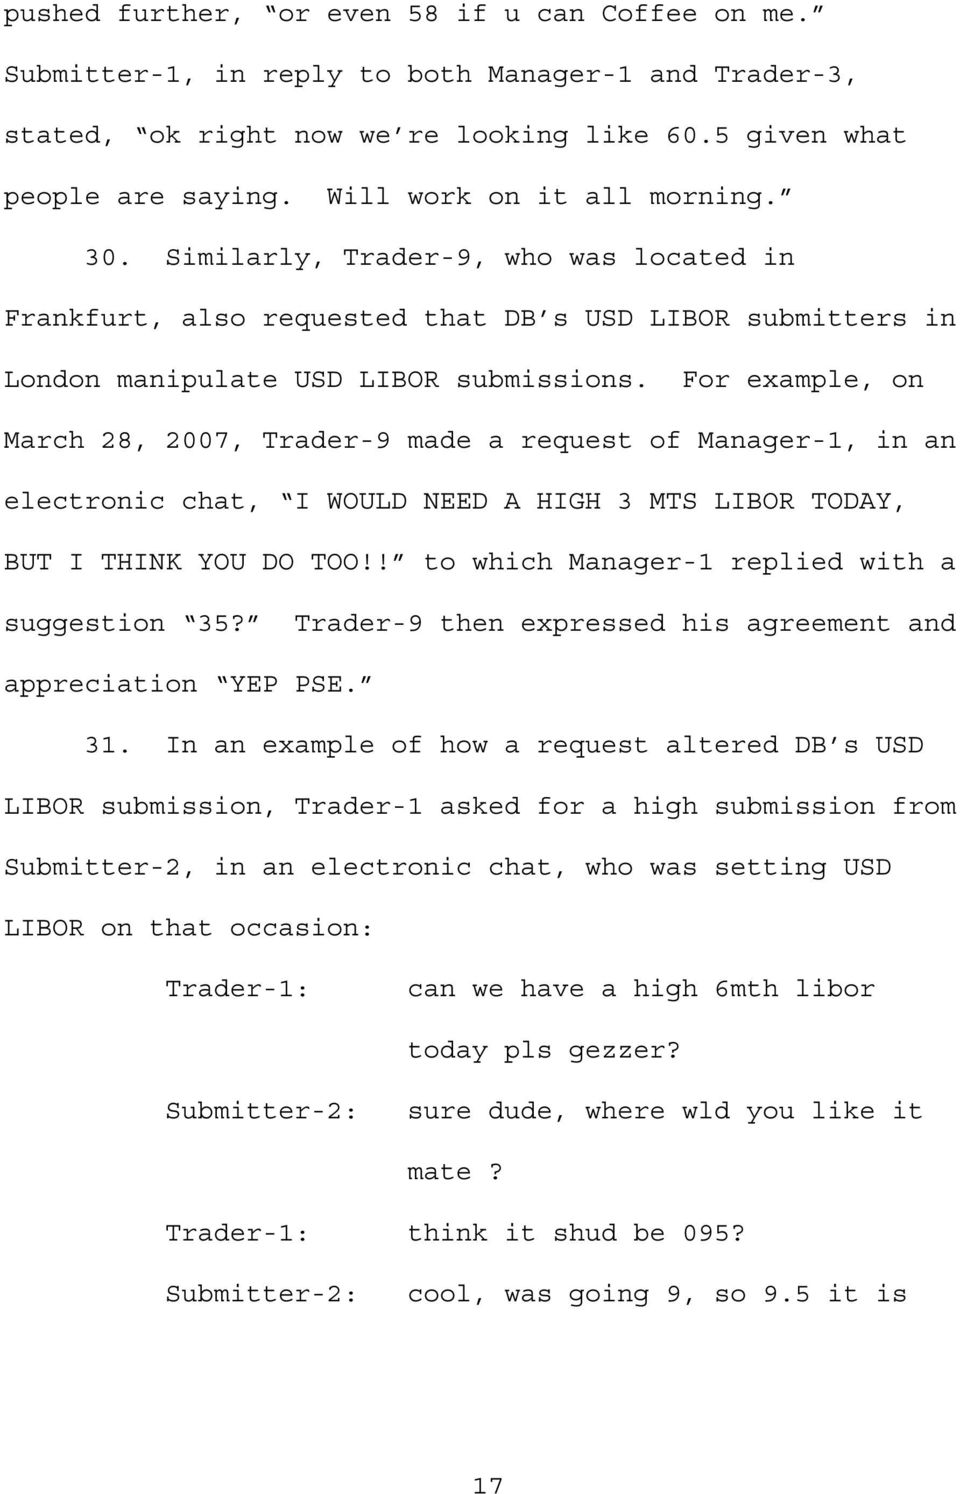 For example, on March 28, 2007, Trader-9 made a request of Manager-1, in an electronic chat, I WOULD NEED A HIGH 3 MTS LIBOR TODAY, BUT I THINK YOU DO TOO!